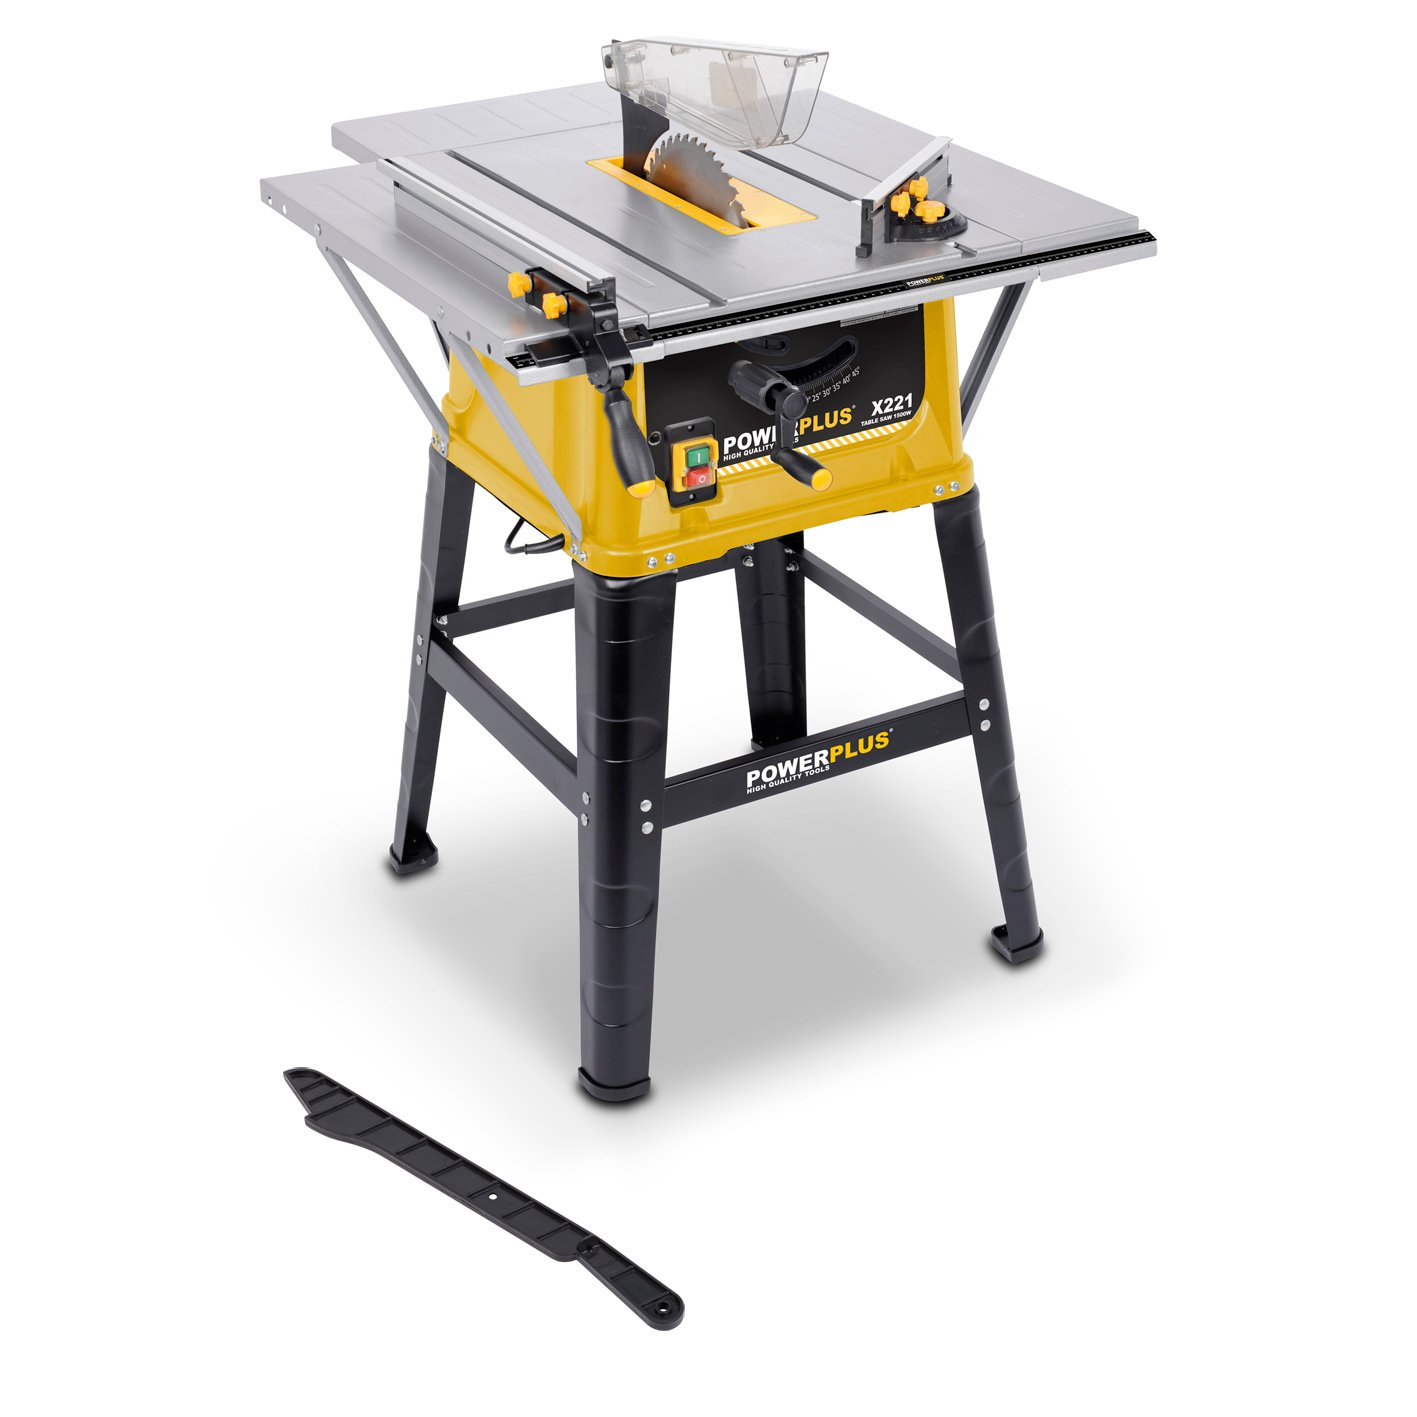 table on saw budget best a inexpensive features dewalt woodworkers for